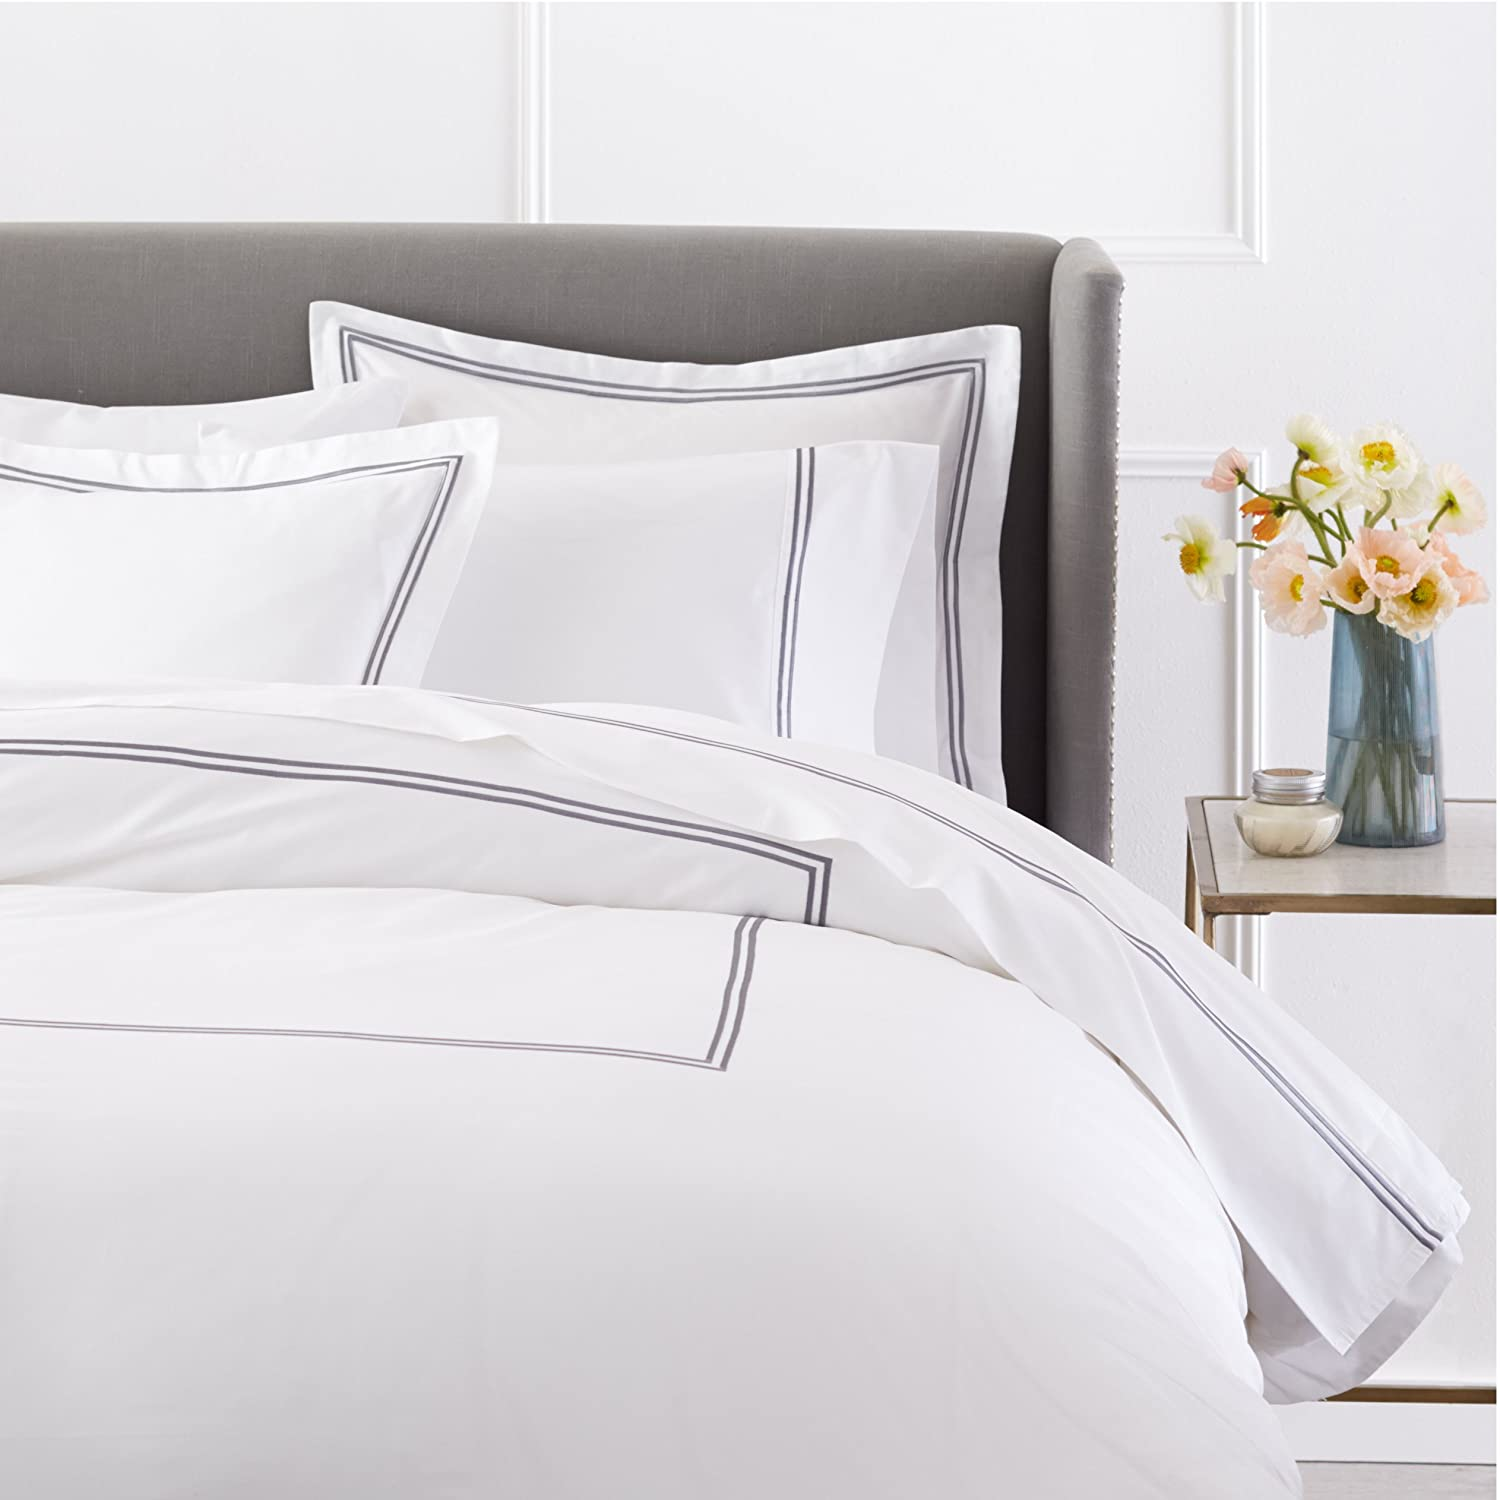 Pinzon Bedding Ease Bedding With Style